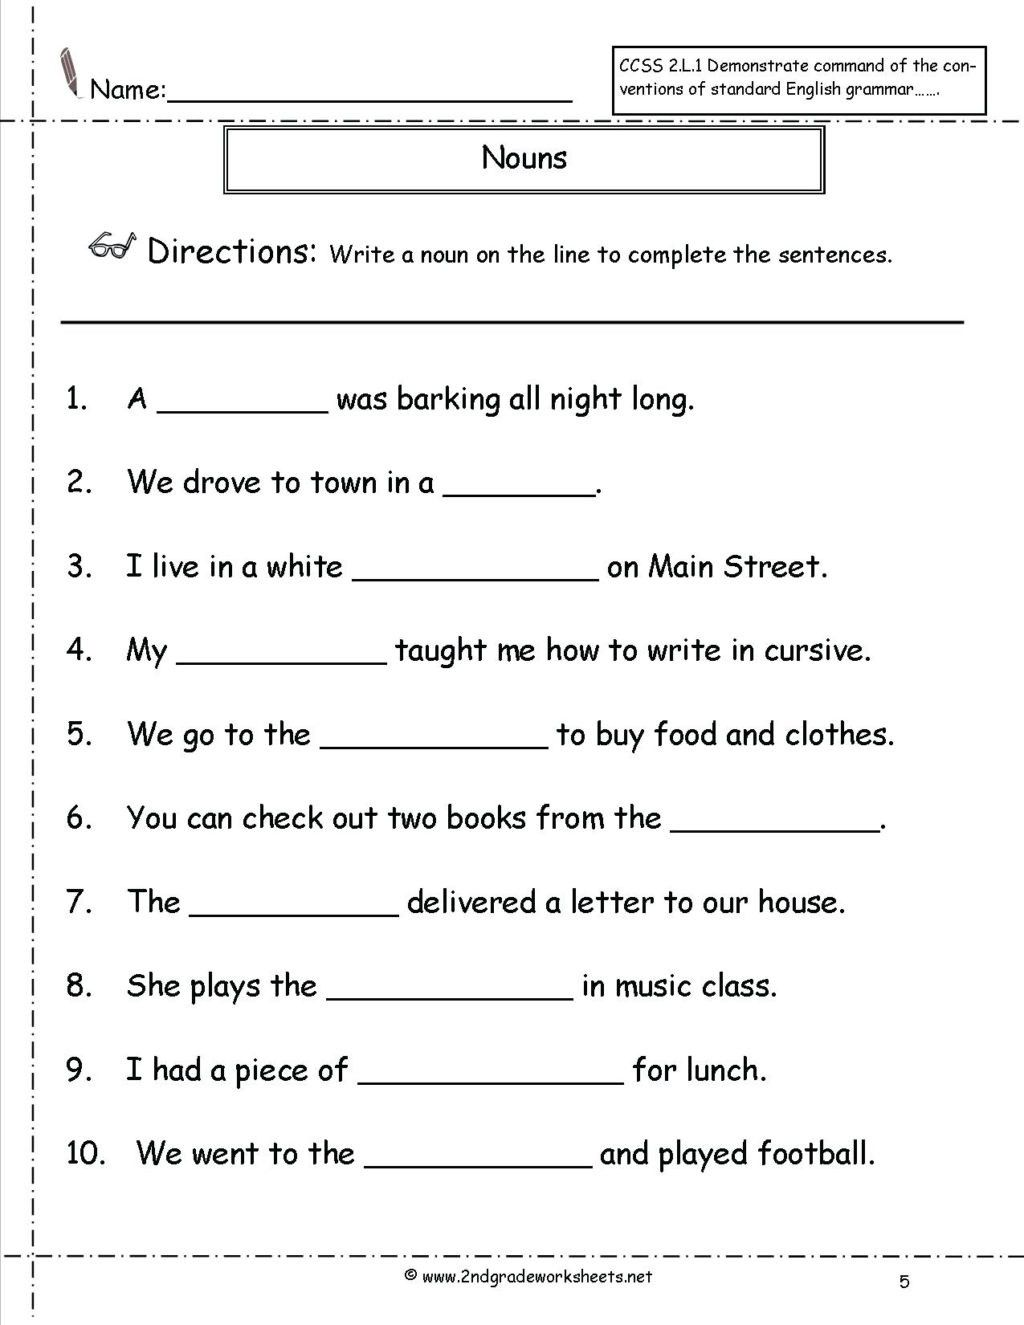 3rd Grade Grammar Worksheets Free Worksheet 2nd Grade Reading Prehension Worksheets Pdf In 2021 Nouns Worksheet Grammar Worksheets Possessive Nouns Worksheets